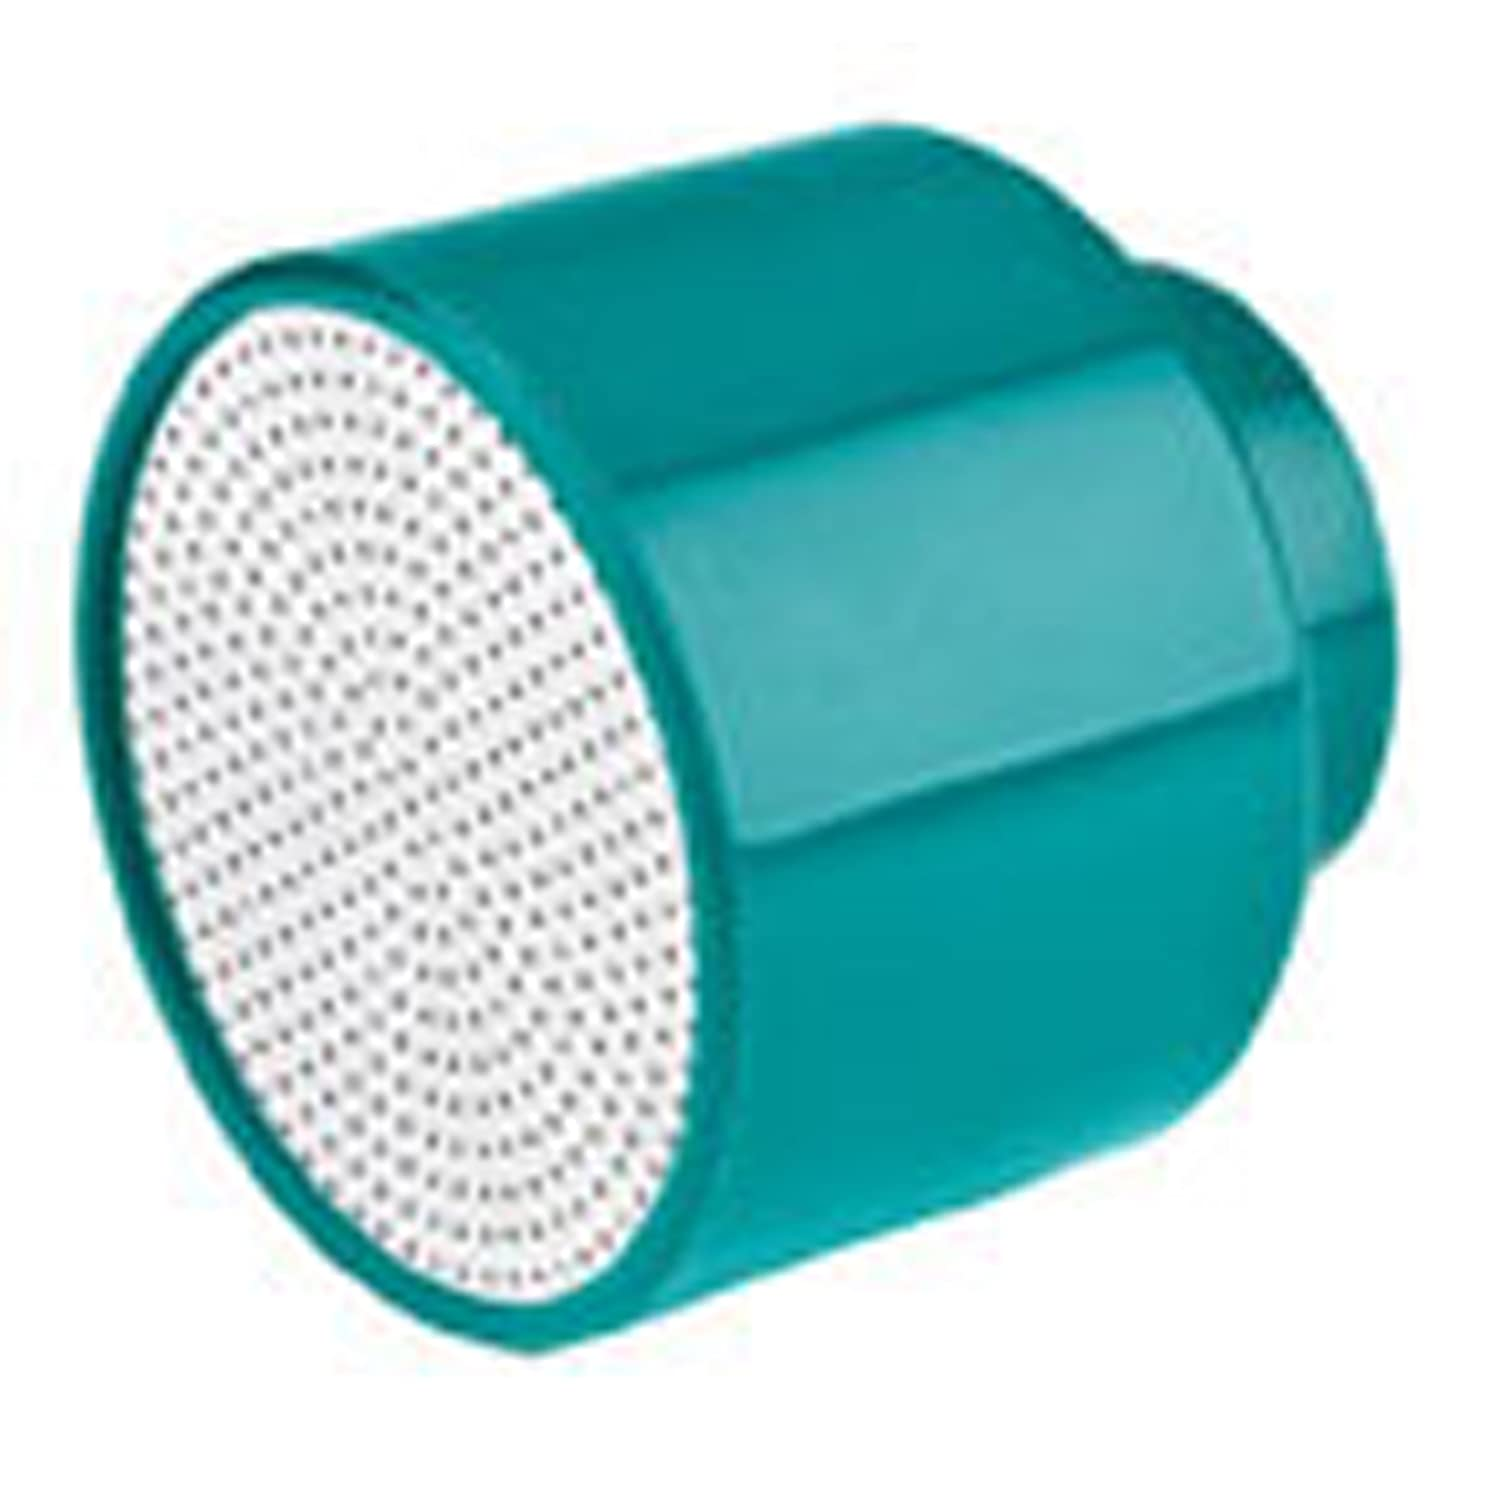 Amazon.com : Gilmour Gentle Shower Head Only 314 Teal : Garden & Outdoor